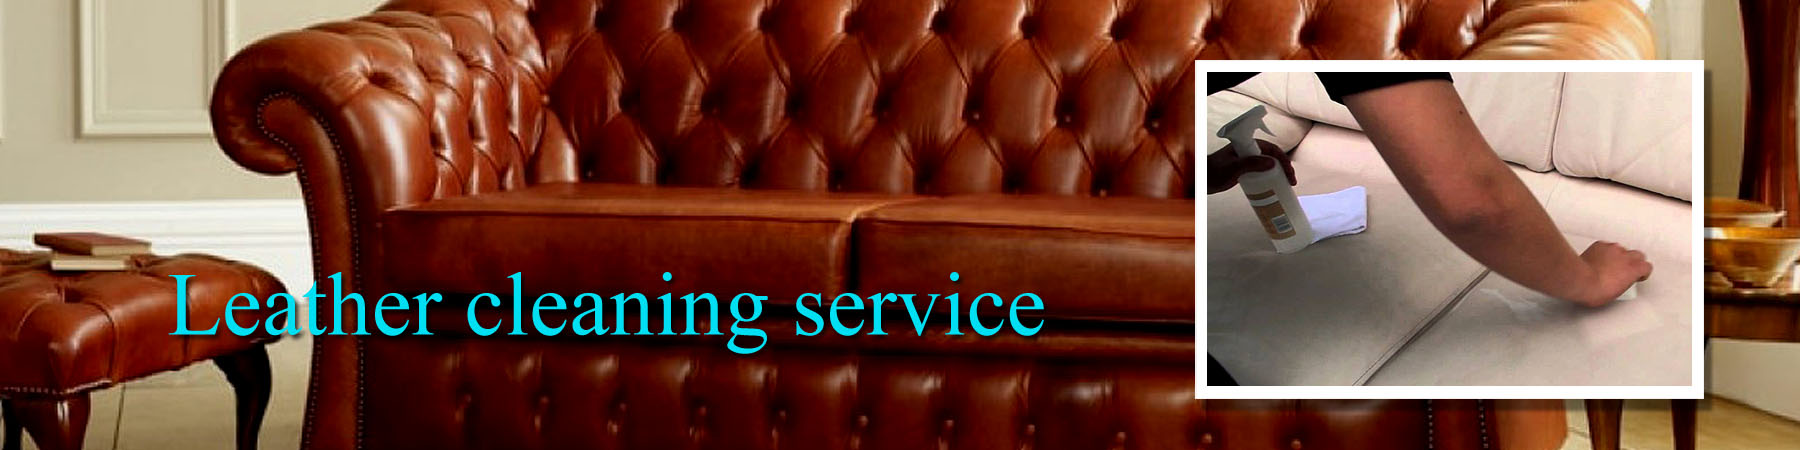 Leather cleaning services J R Cleaning